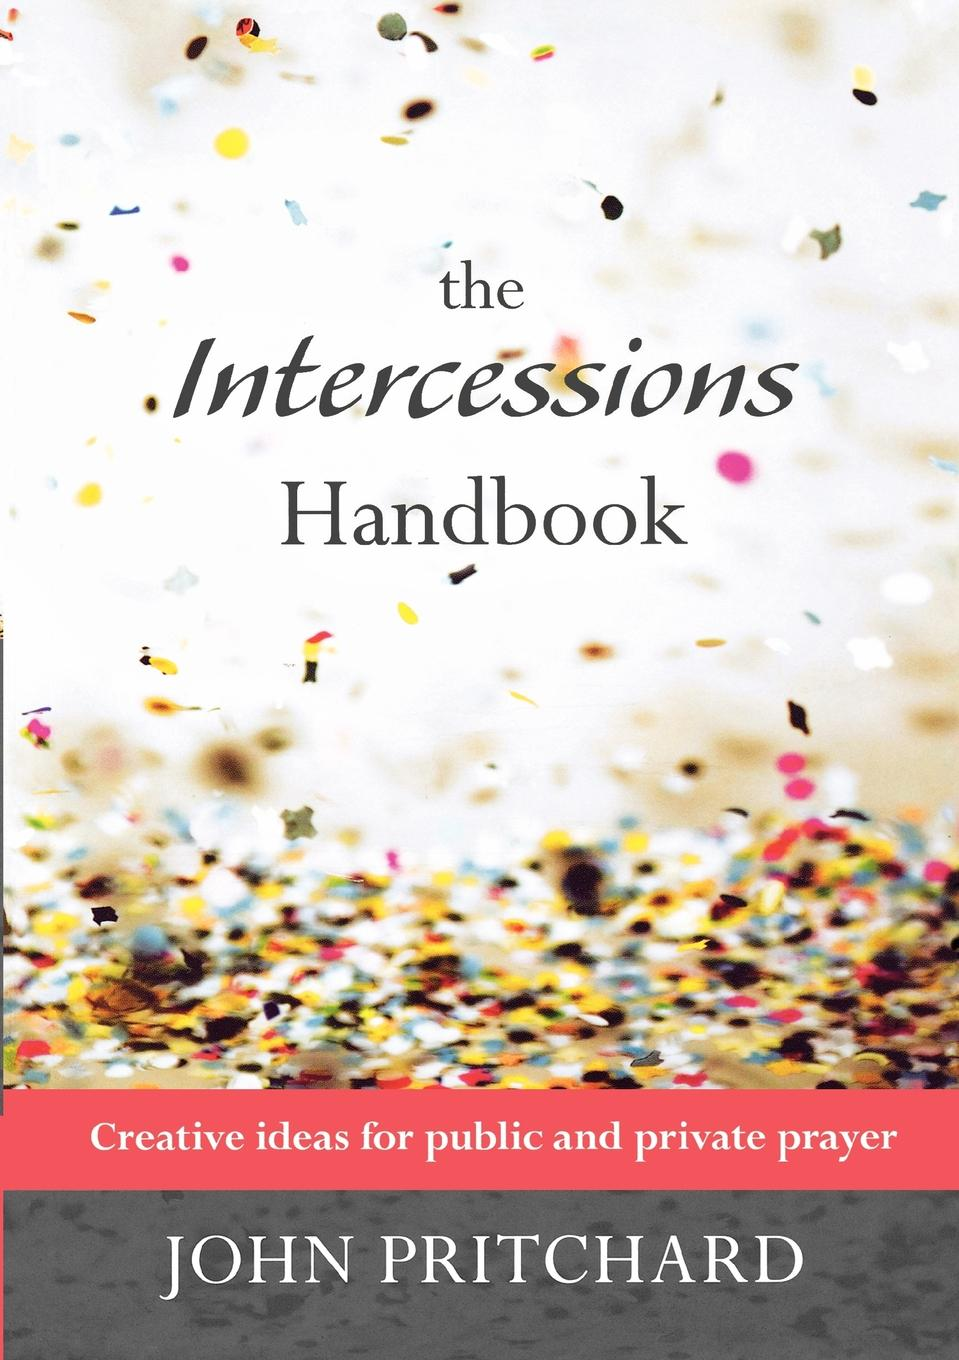 John Pritchard Intercessions Handbook - Creative ideas for public and private prayer john pritchard something more